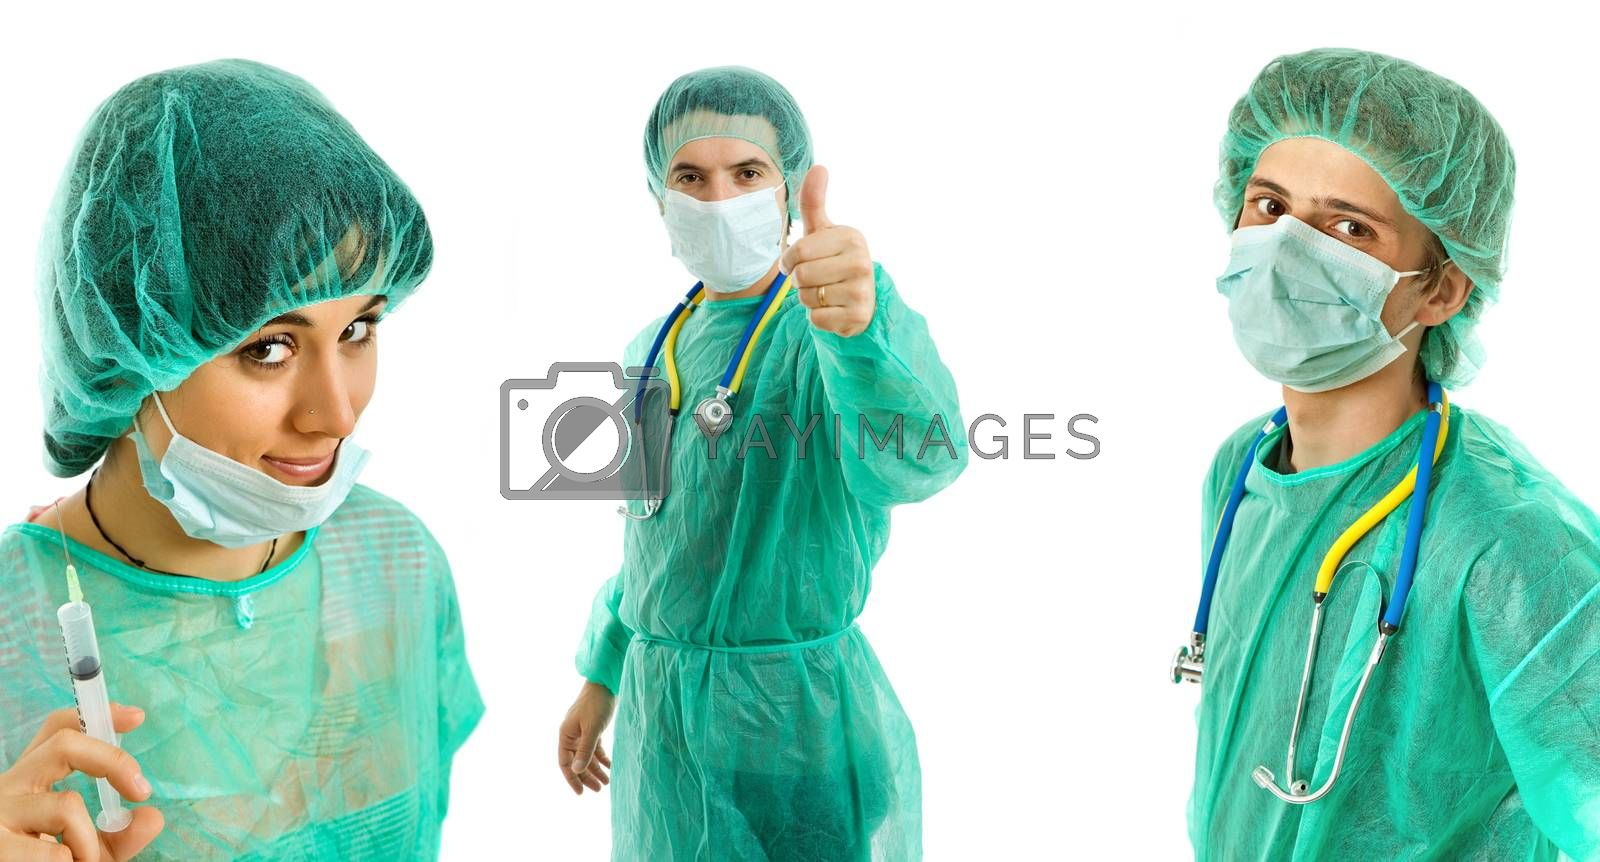 Royalty free image of doctors by zittto